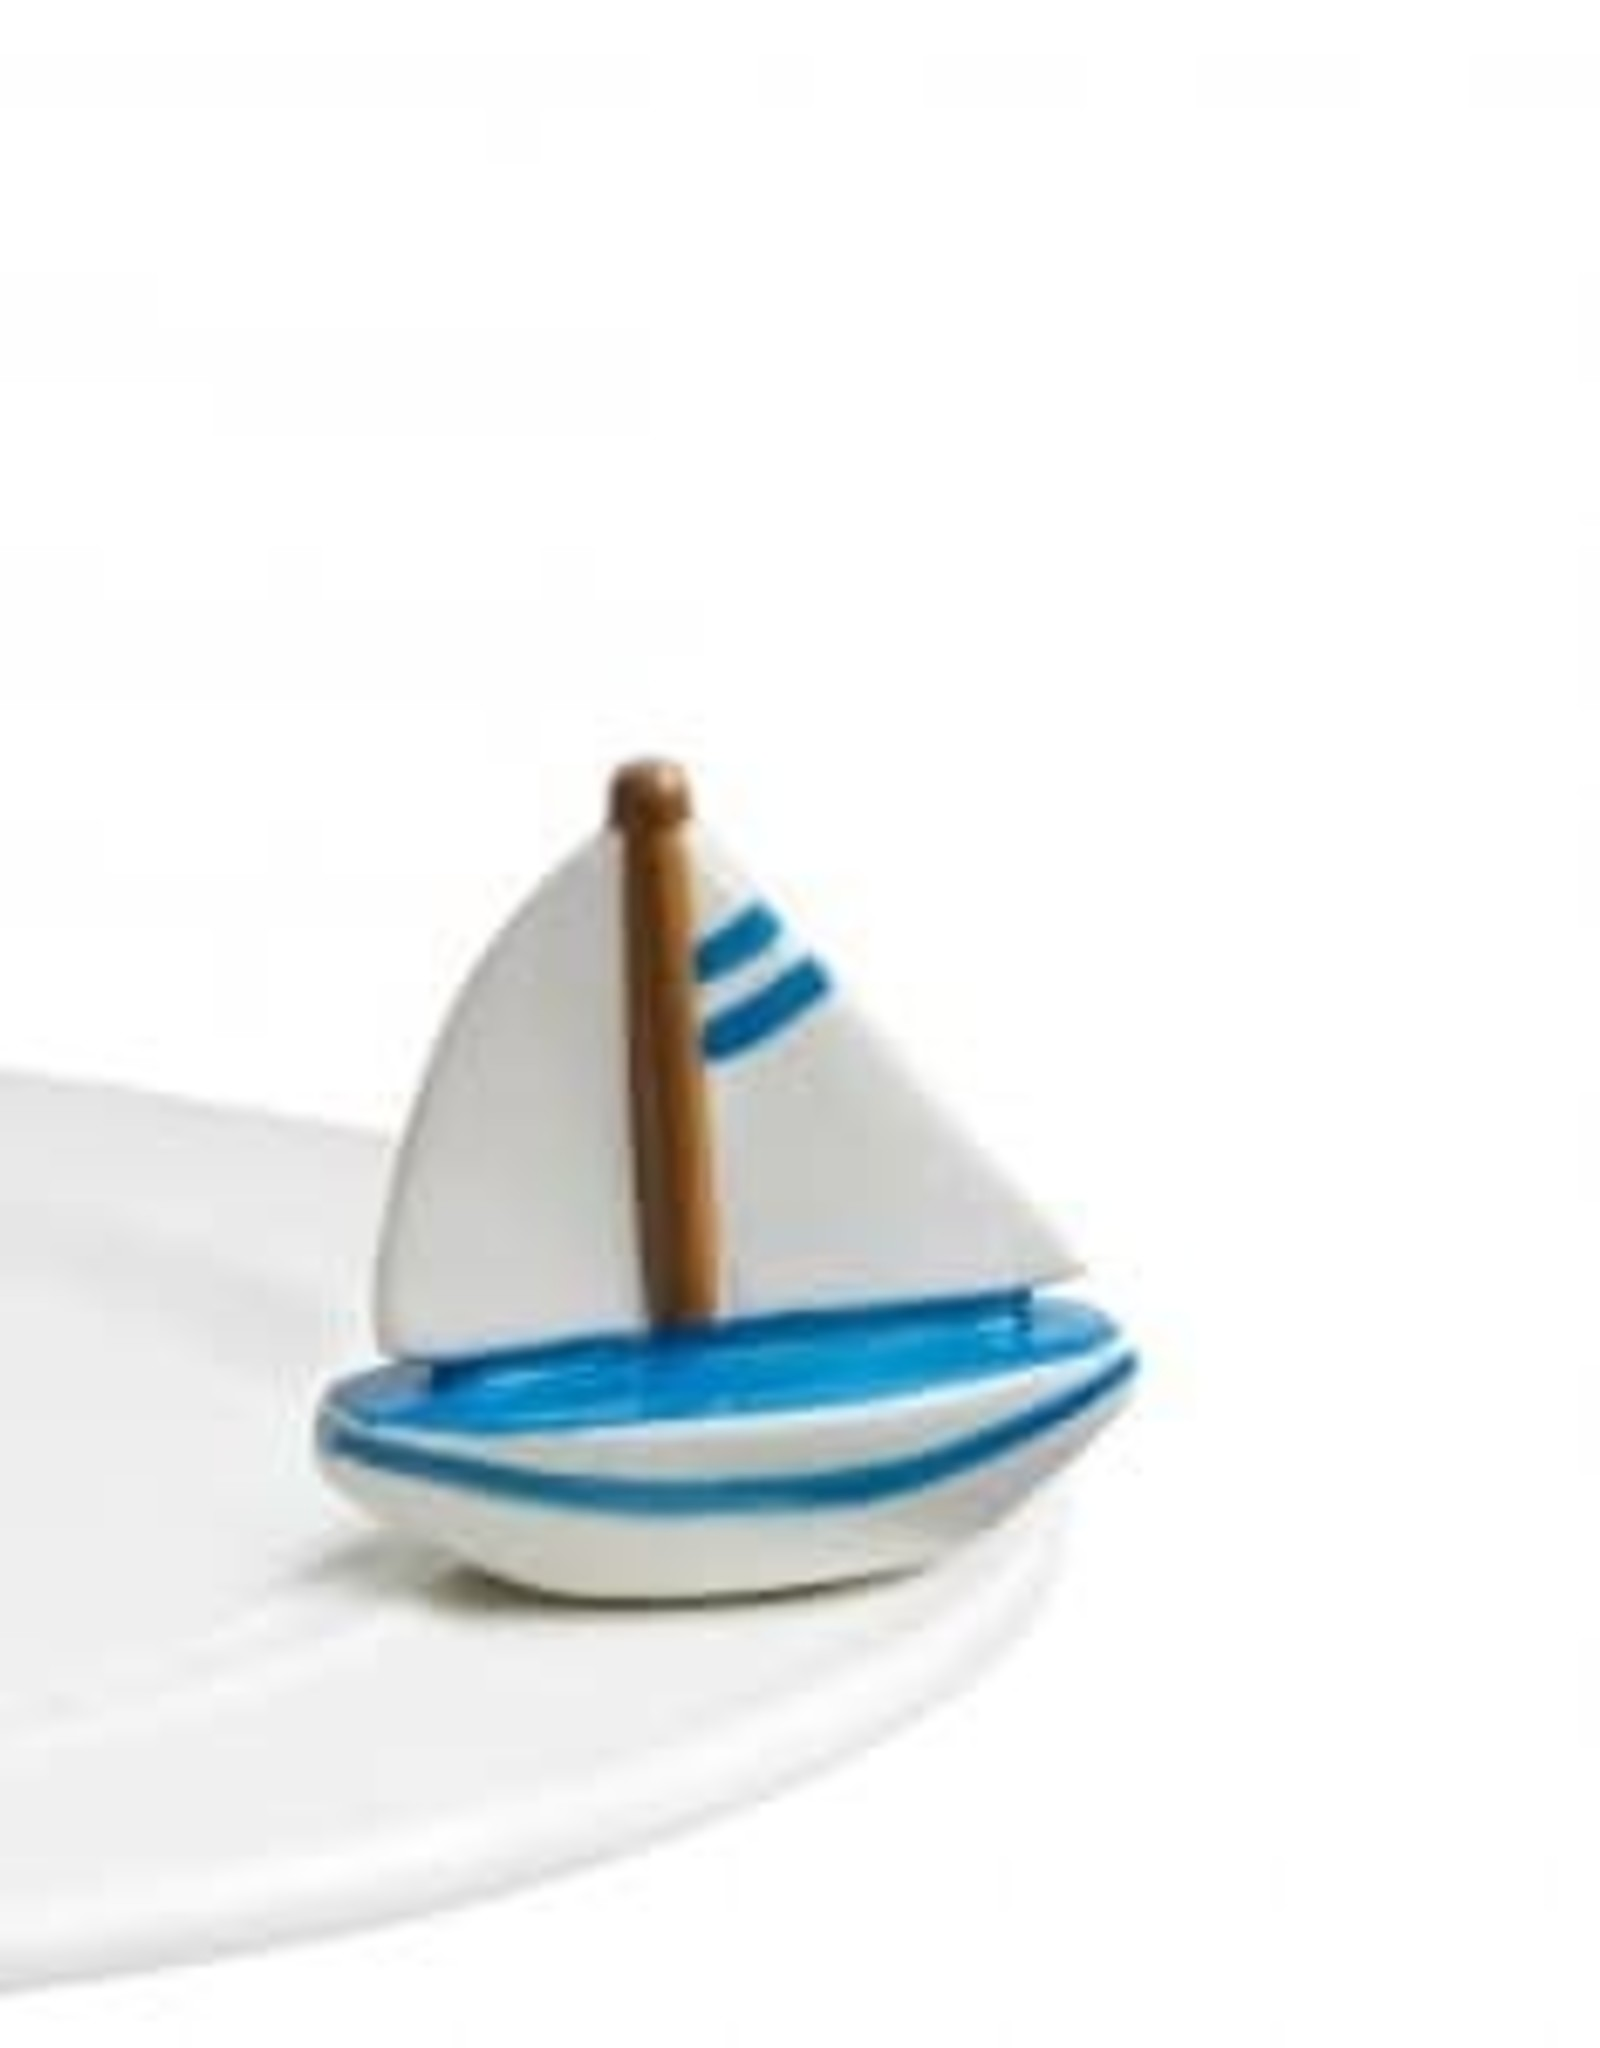 Nora Fleming Sail me away (boat mini)